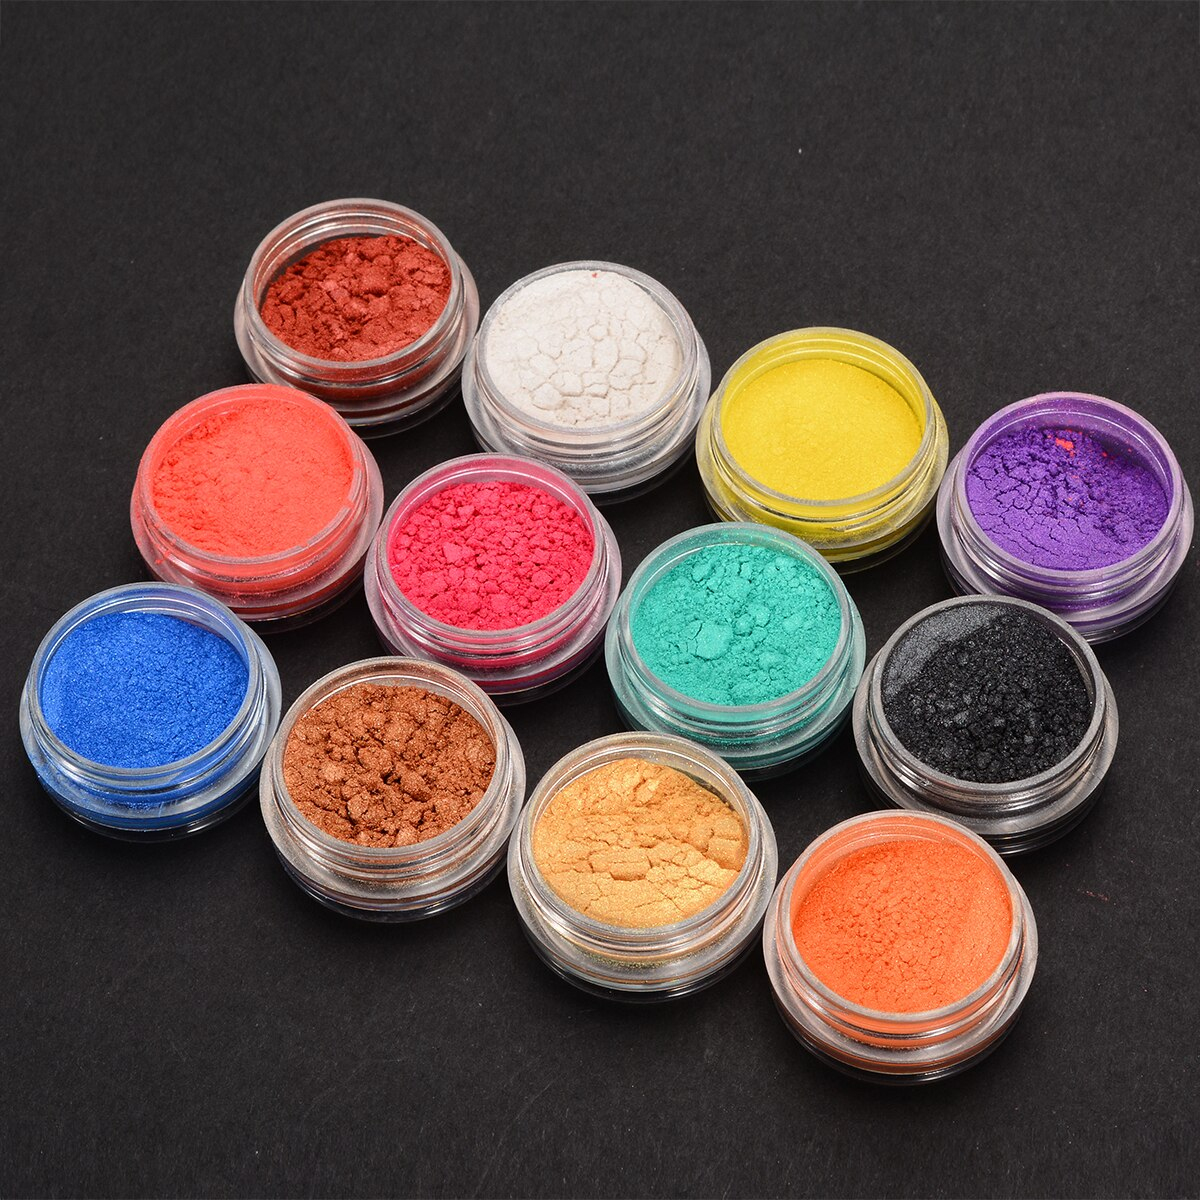 Us $4.56 40% Off|12Pcs Colors Soap Dye Shimmer Natural Mineral Mica Powder  Pigments For Jewelry Making Cutting Dies Paper Decor Diy Crafts|Diy Craft  ... à Decoration Minerale Jardin